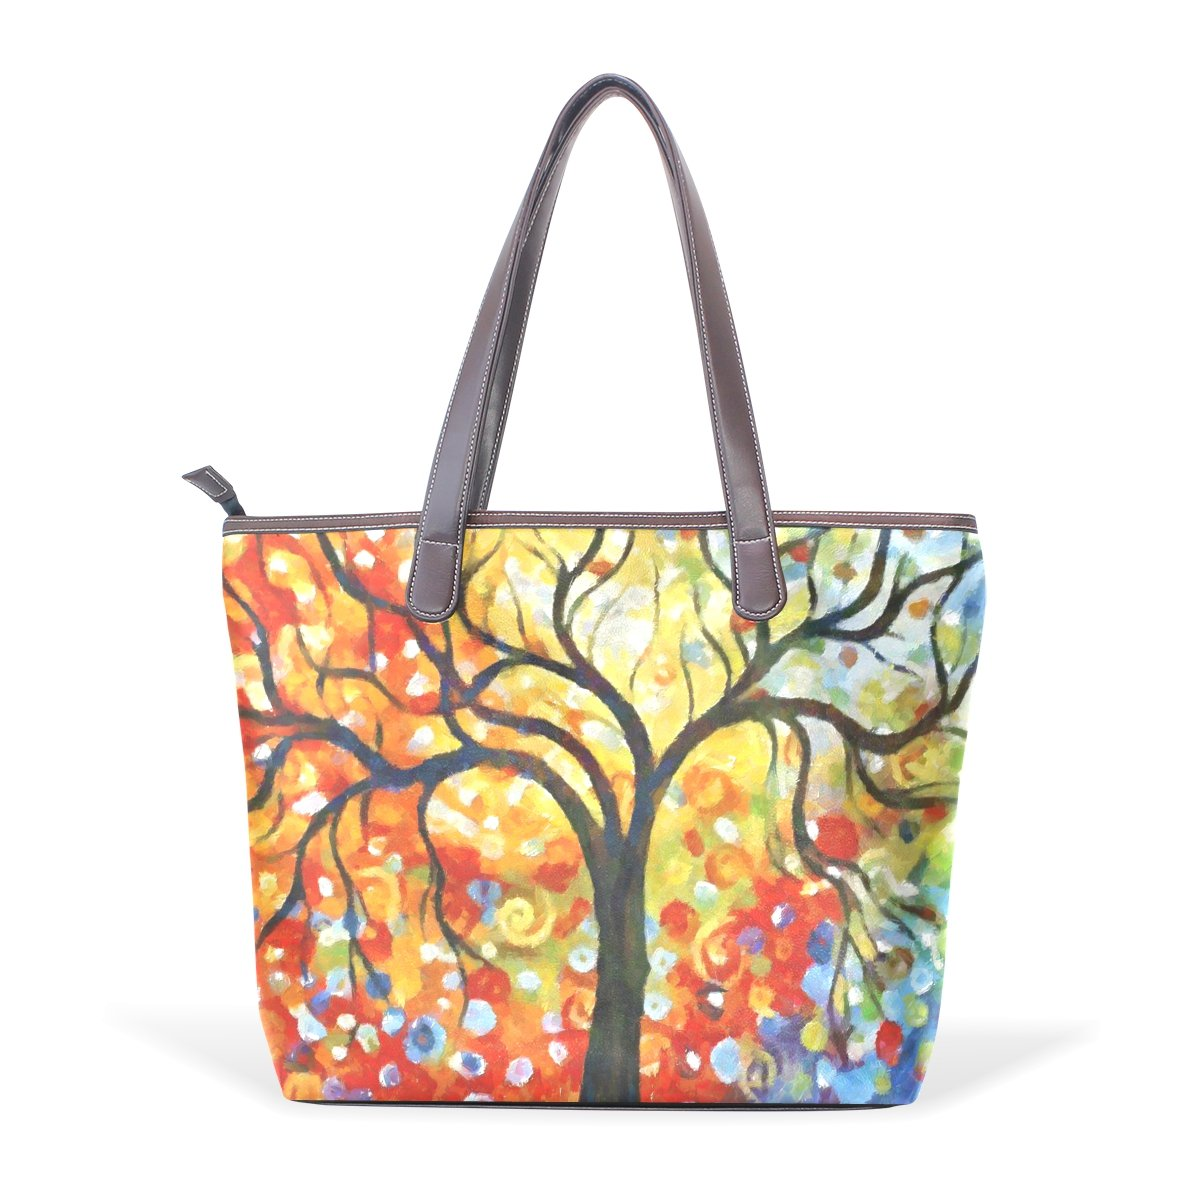 Mr.Weng Household Oil Painting Autumn Lady Handbag Tote Bag Zipper Shoulder Bag